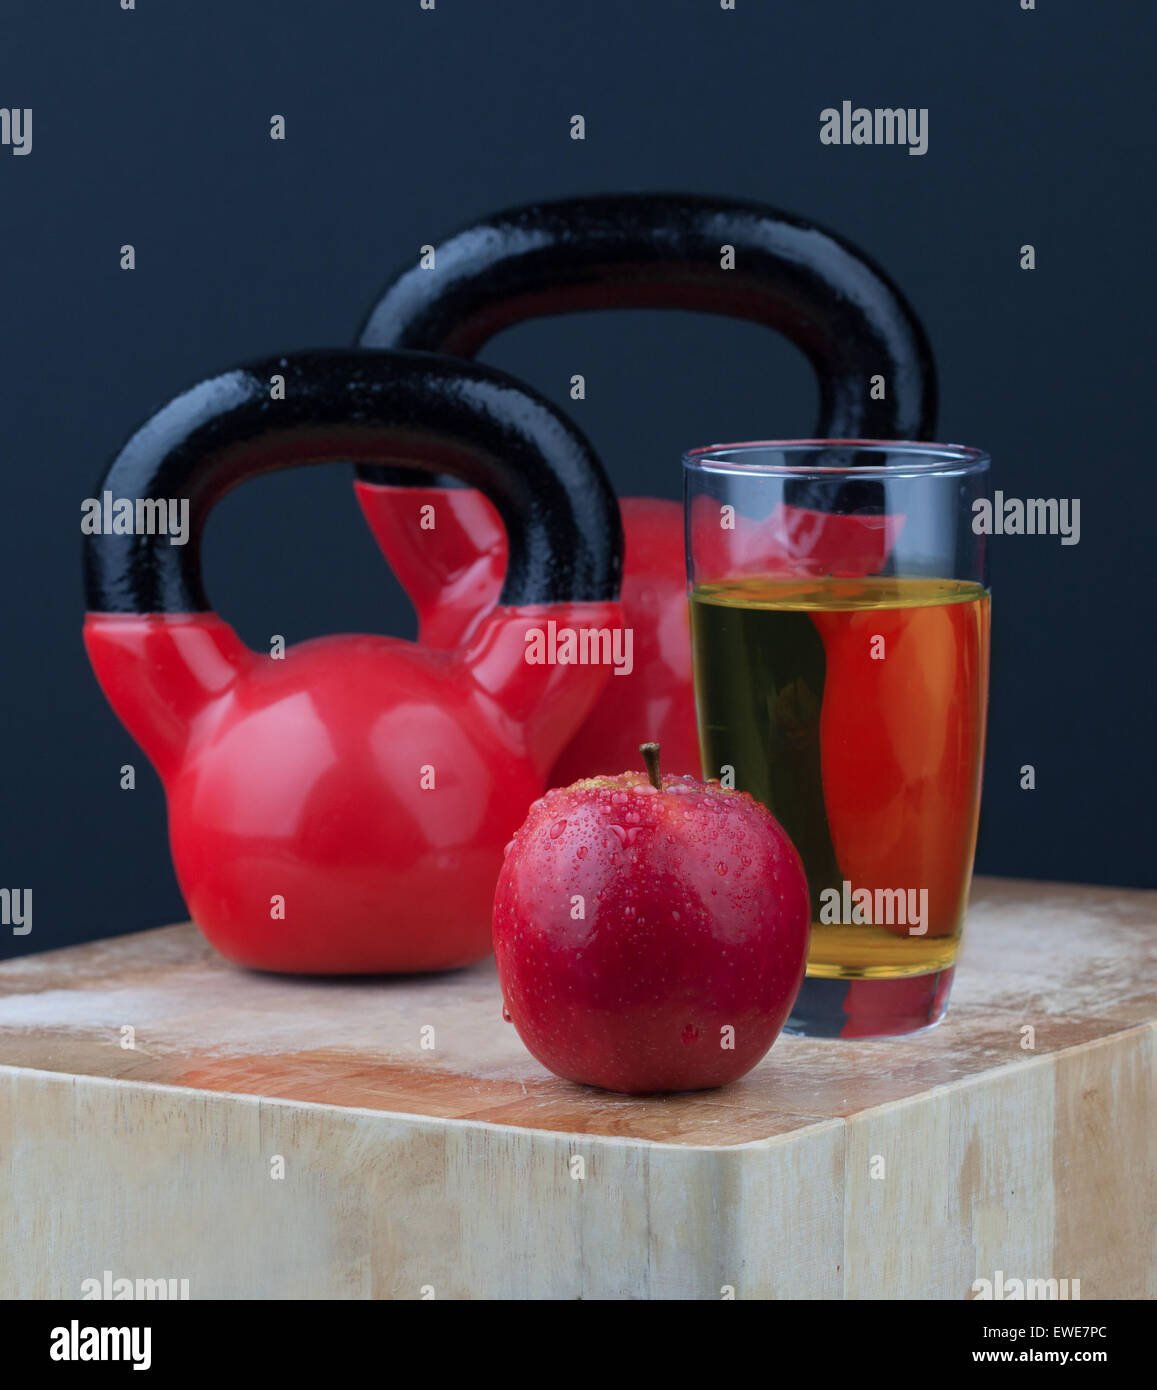 Red apple, juice, and kettlebells on chopping board - Stock Image